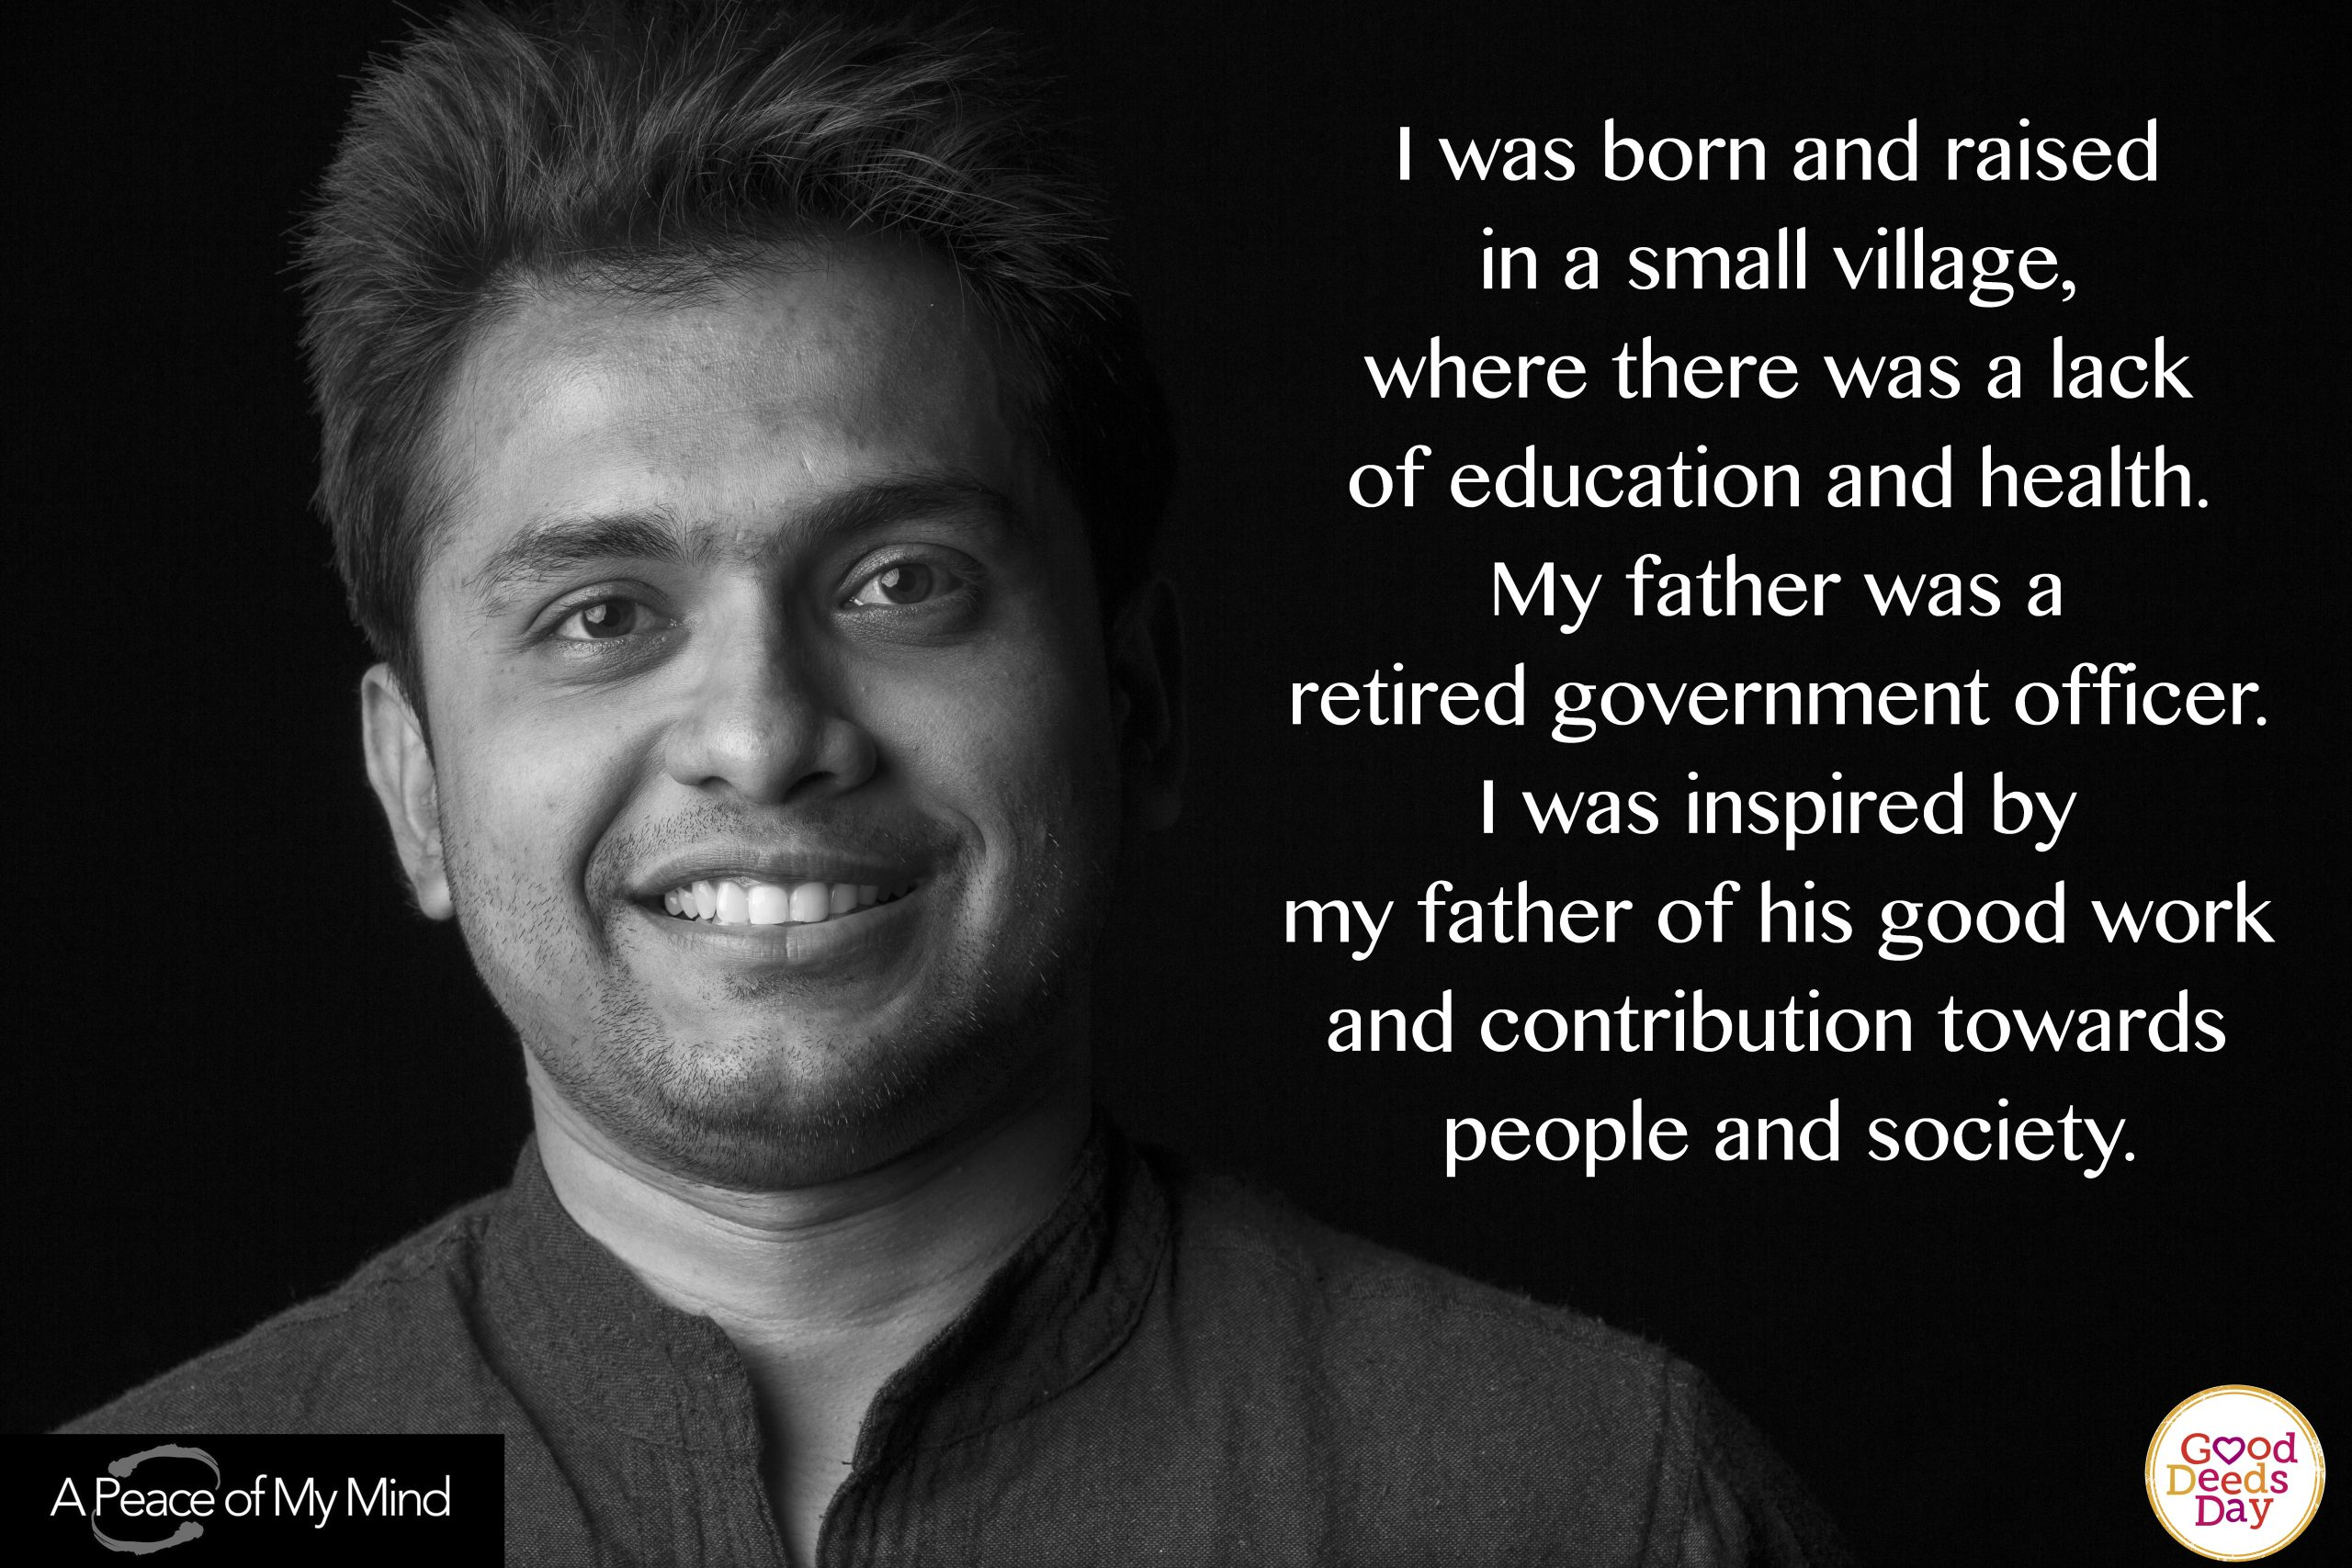 I was born and raised n a small village, where there was a lack of education and health. My father was a retired government officer. I was inspired by my father of his good work and contribution toward people and society.